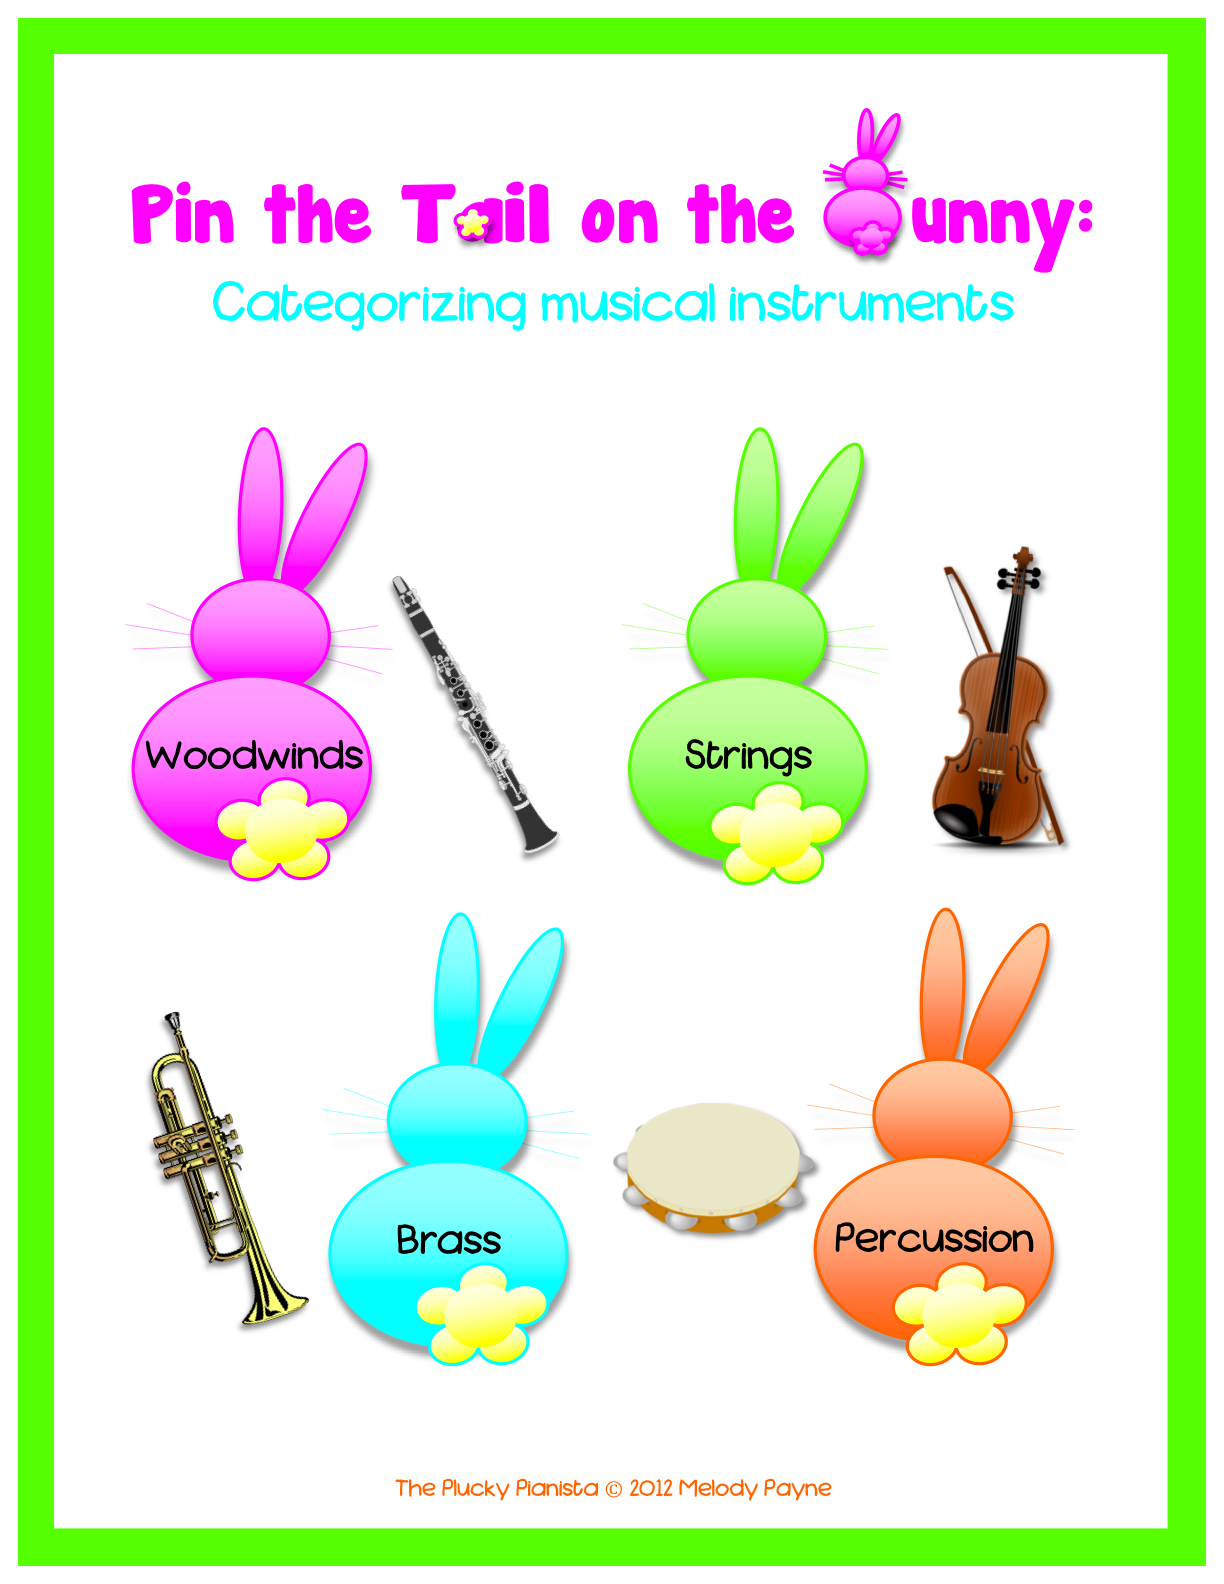 Pin the tail on the bunny printable craftbnb for Pin the tail on the dinosaur template